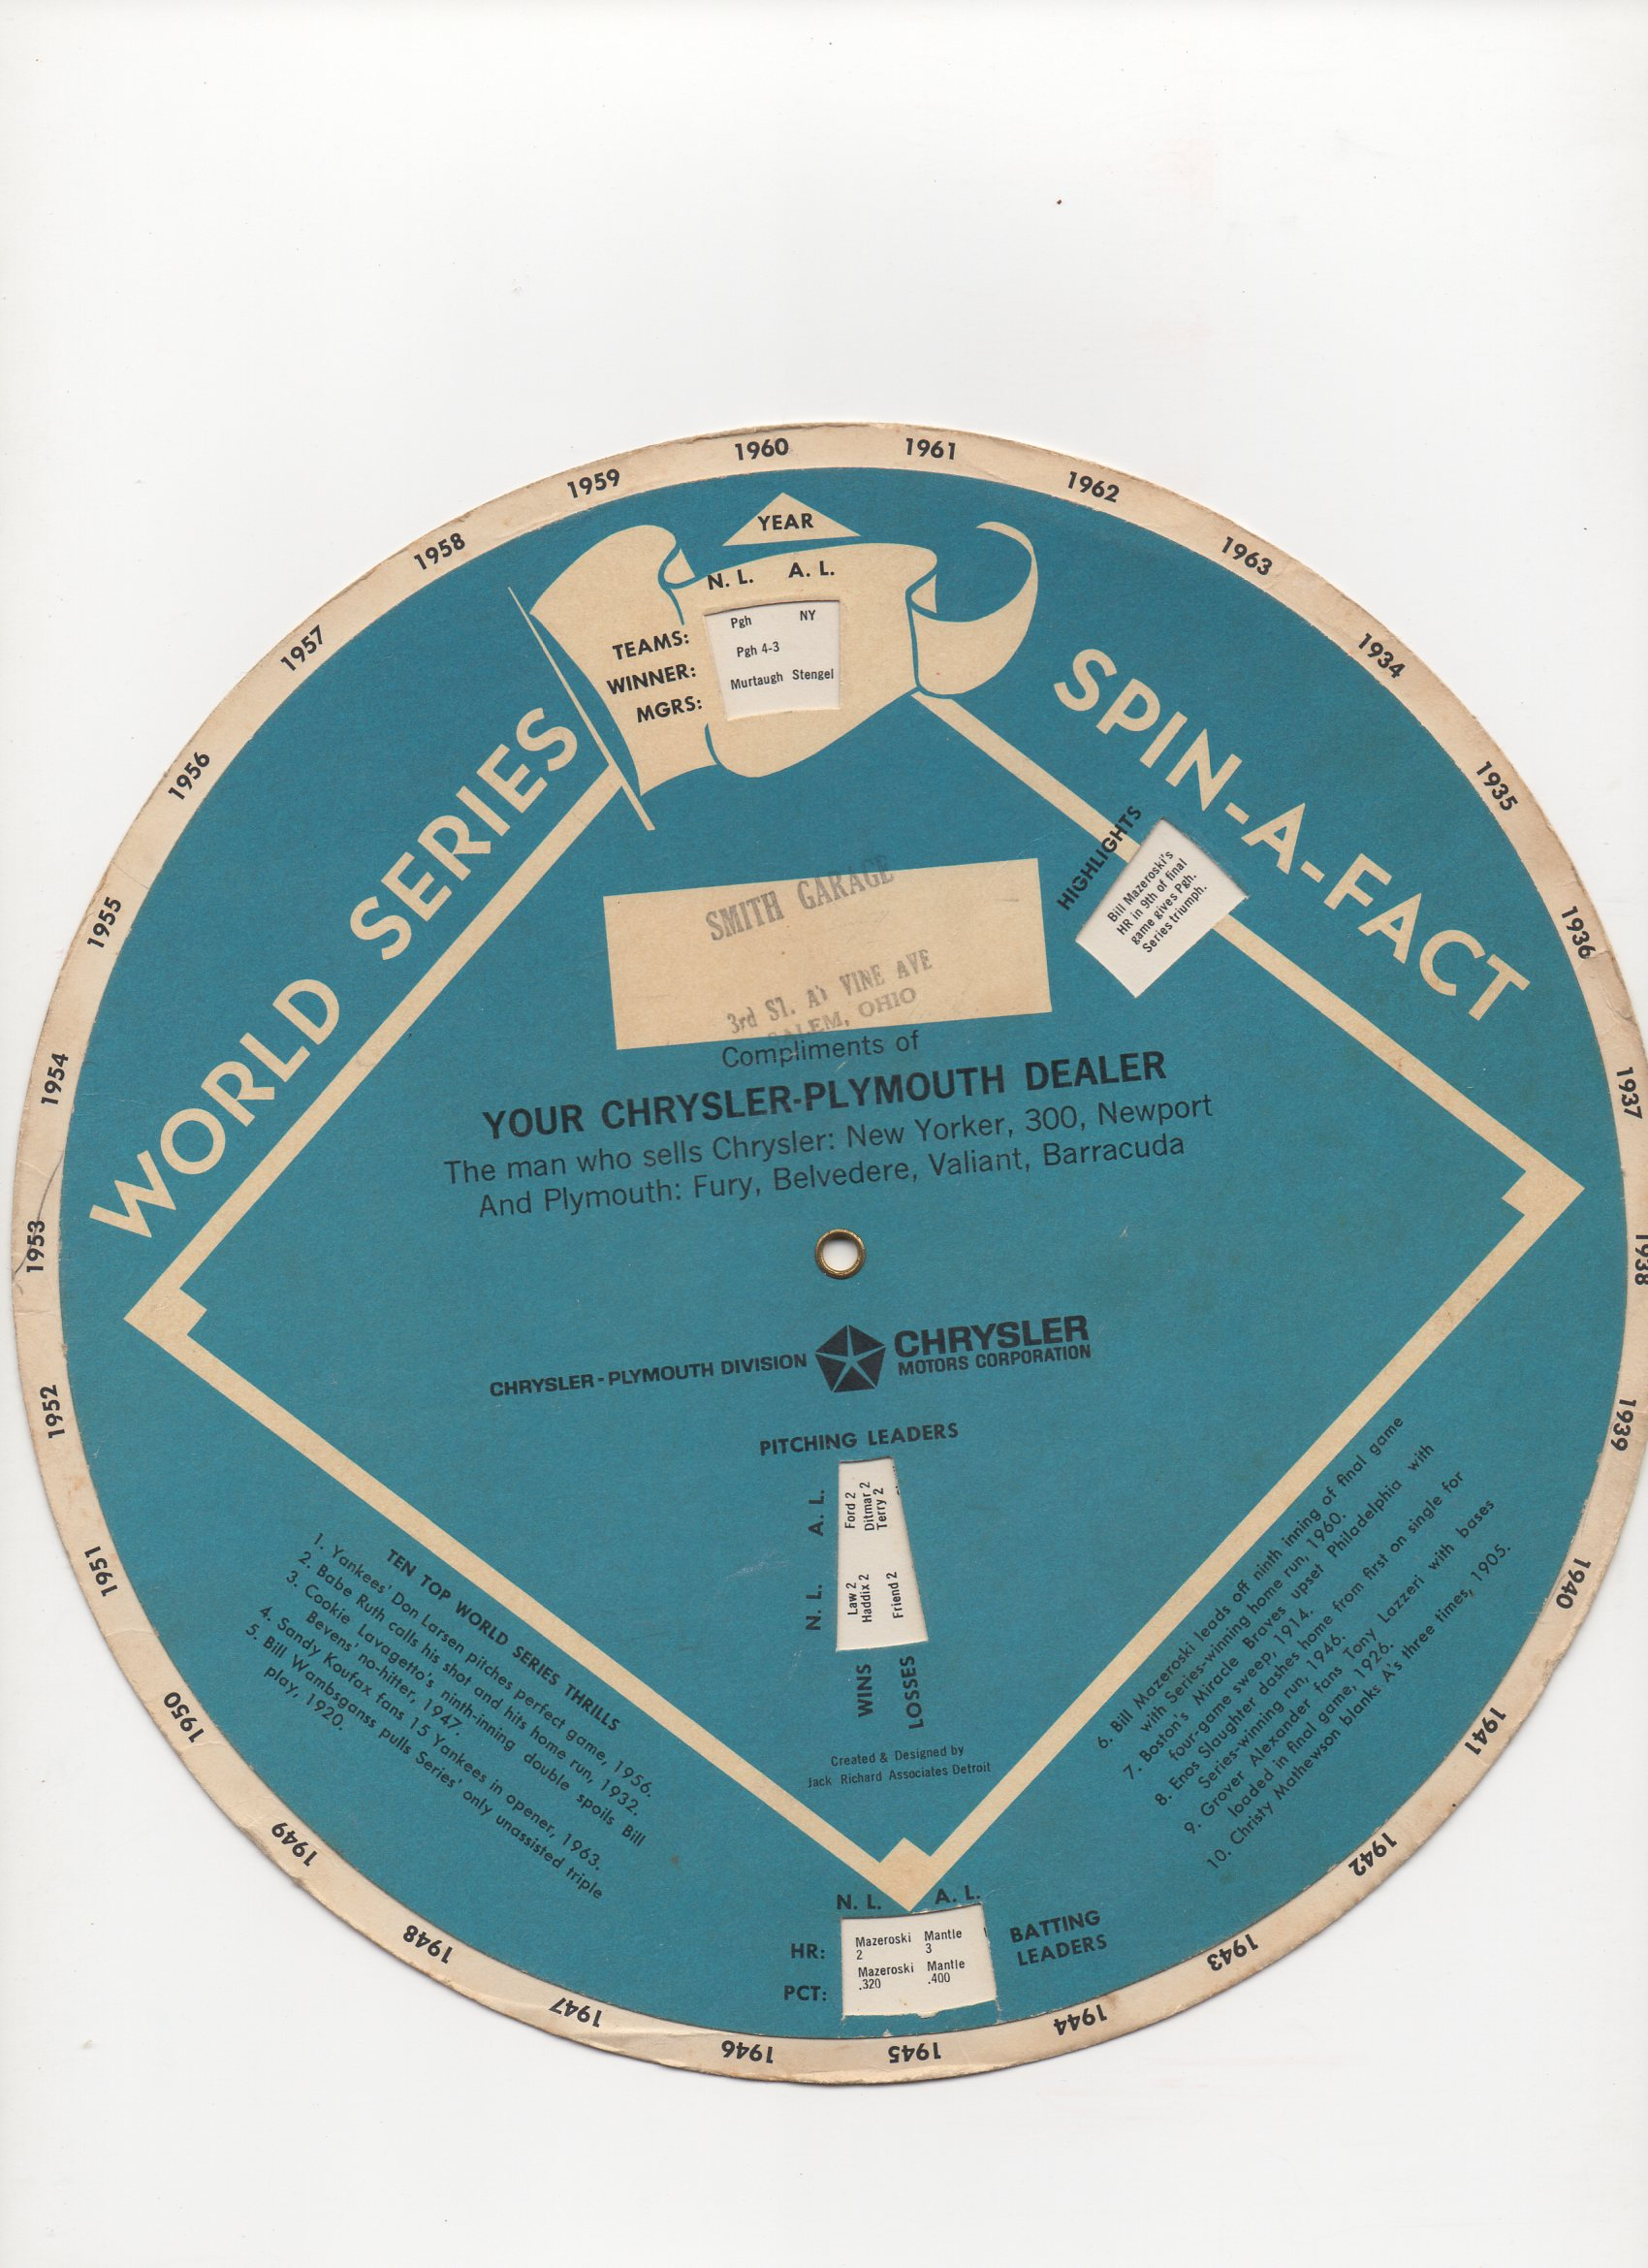 1964 world series spin-a-fact